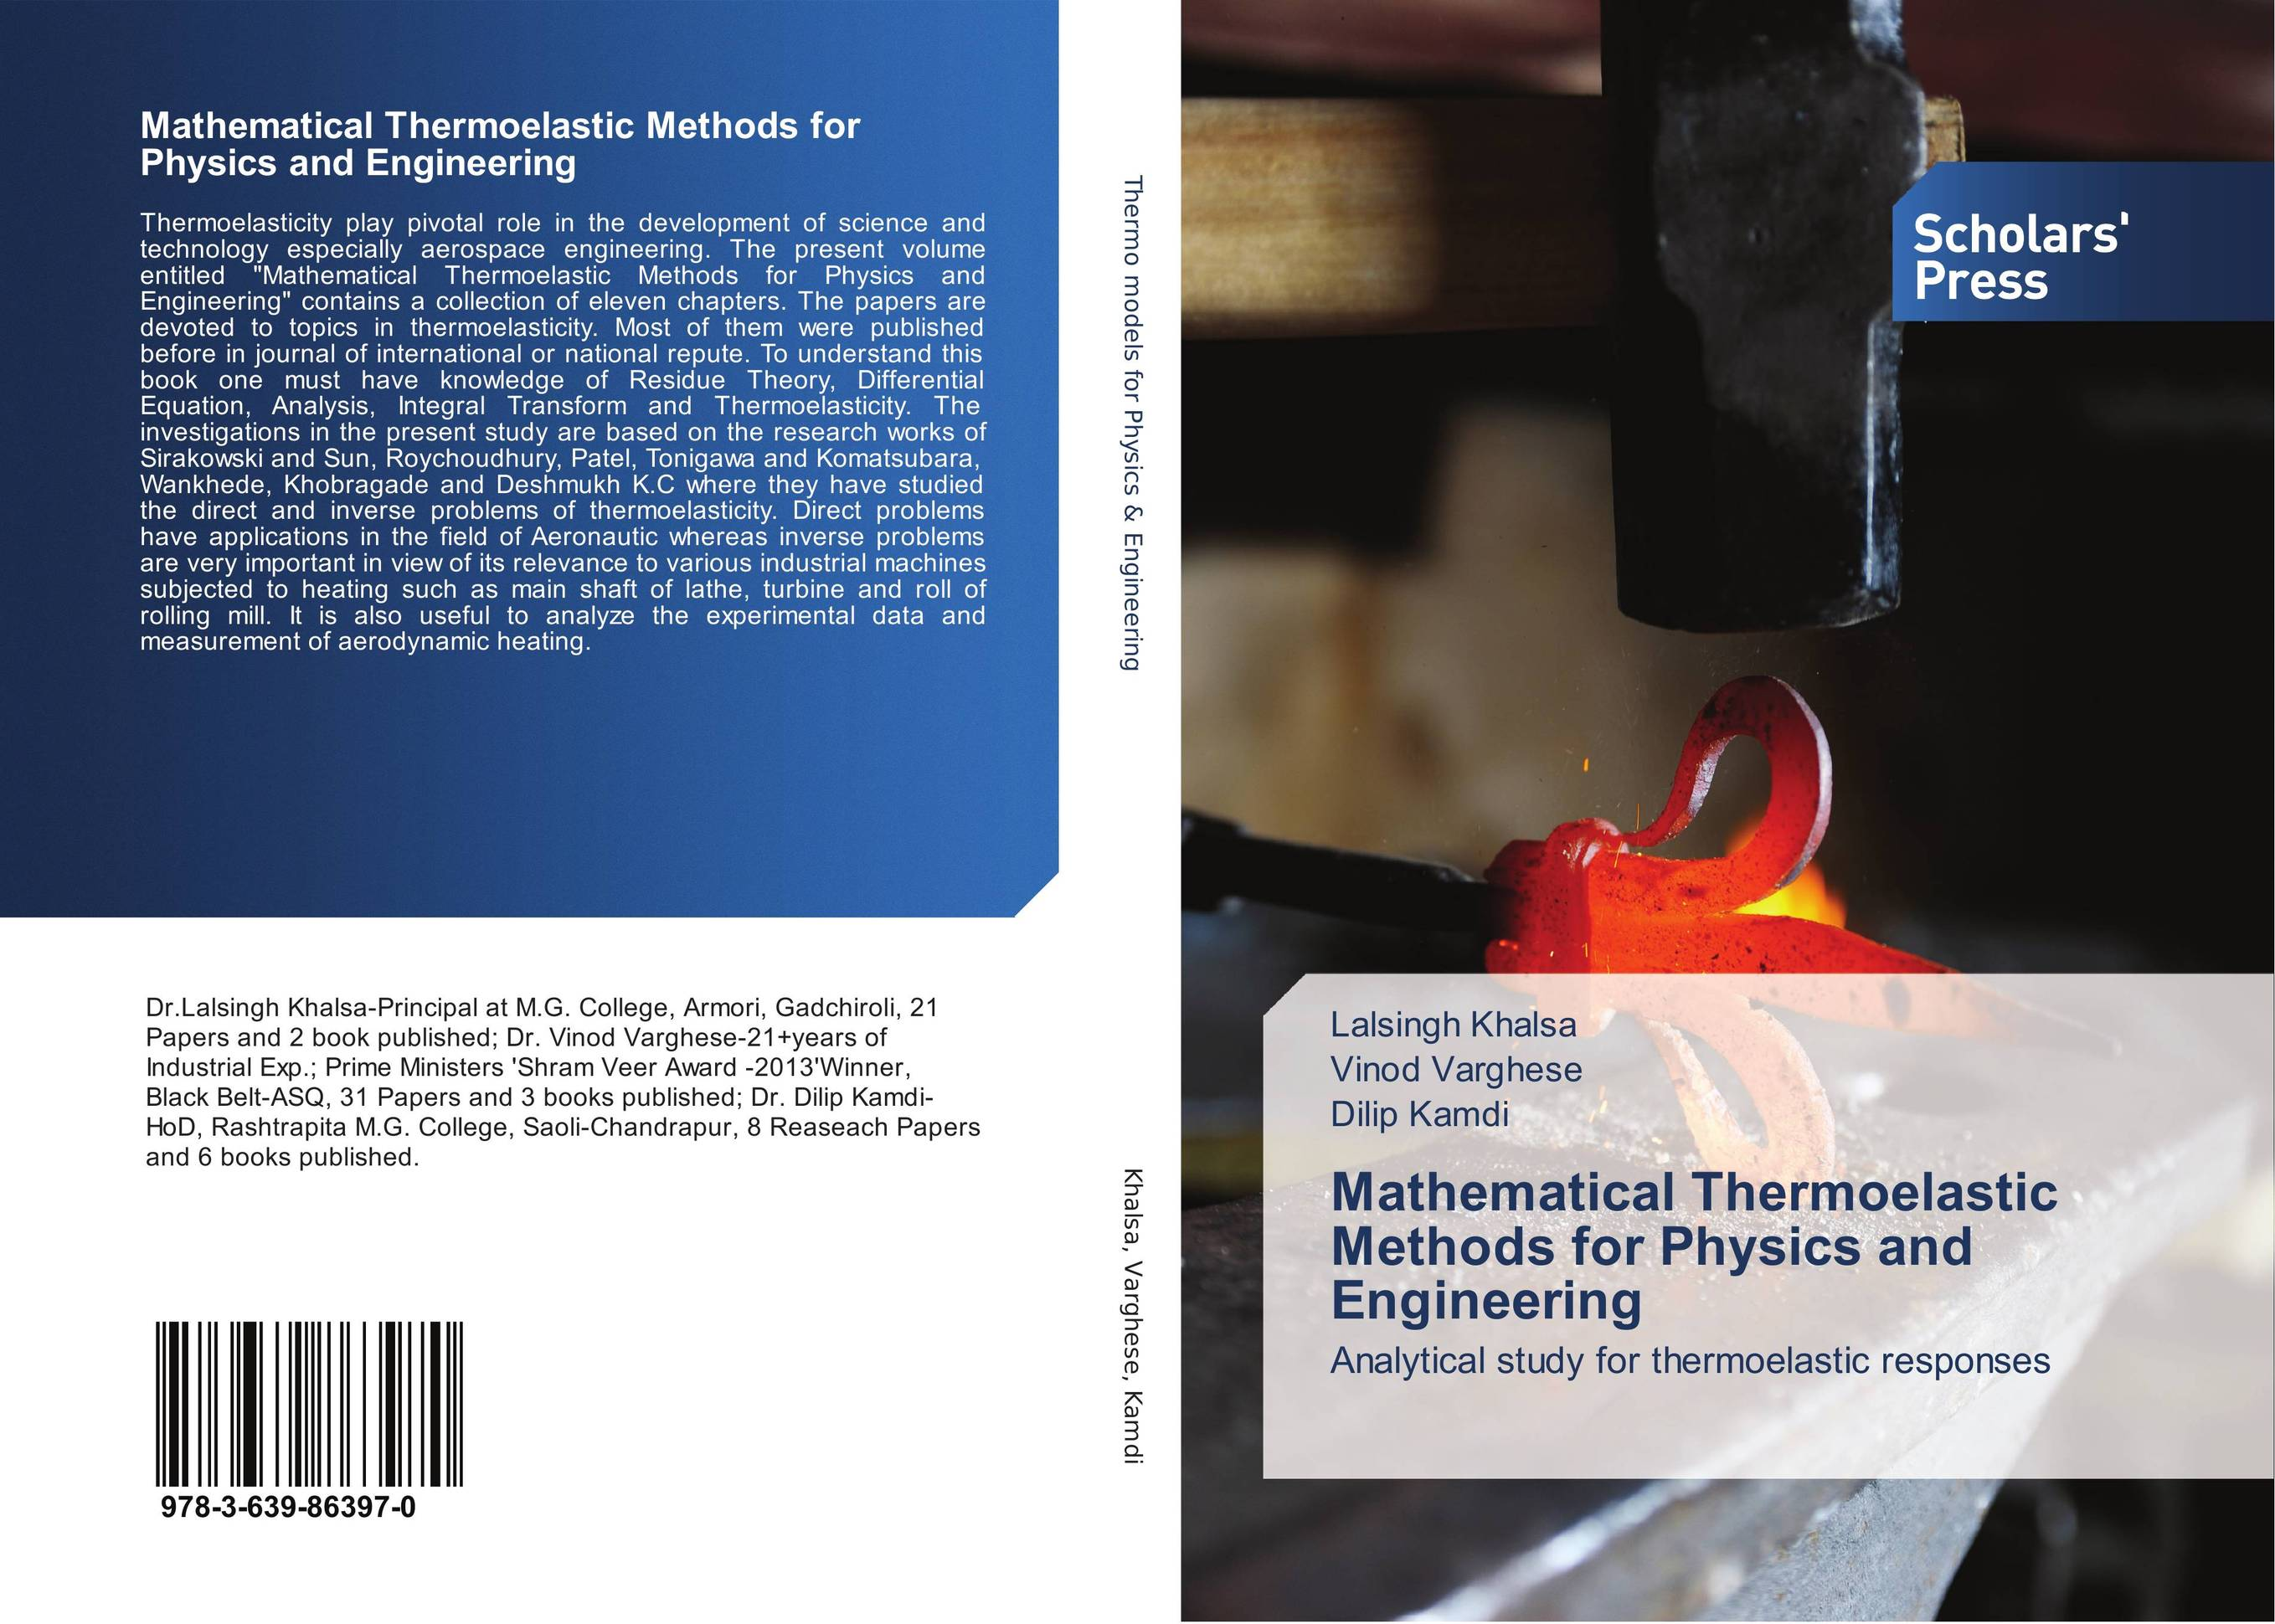 Mathematical Thermoelastic Methods for Physics and Engineering